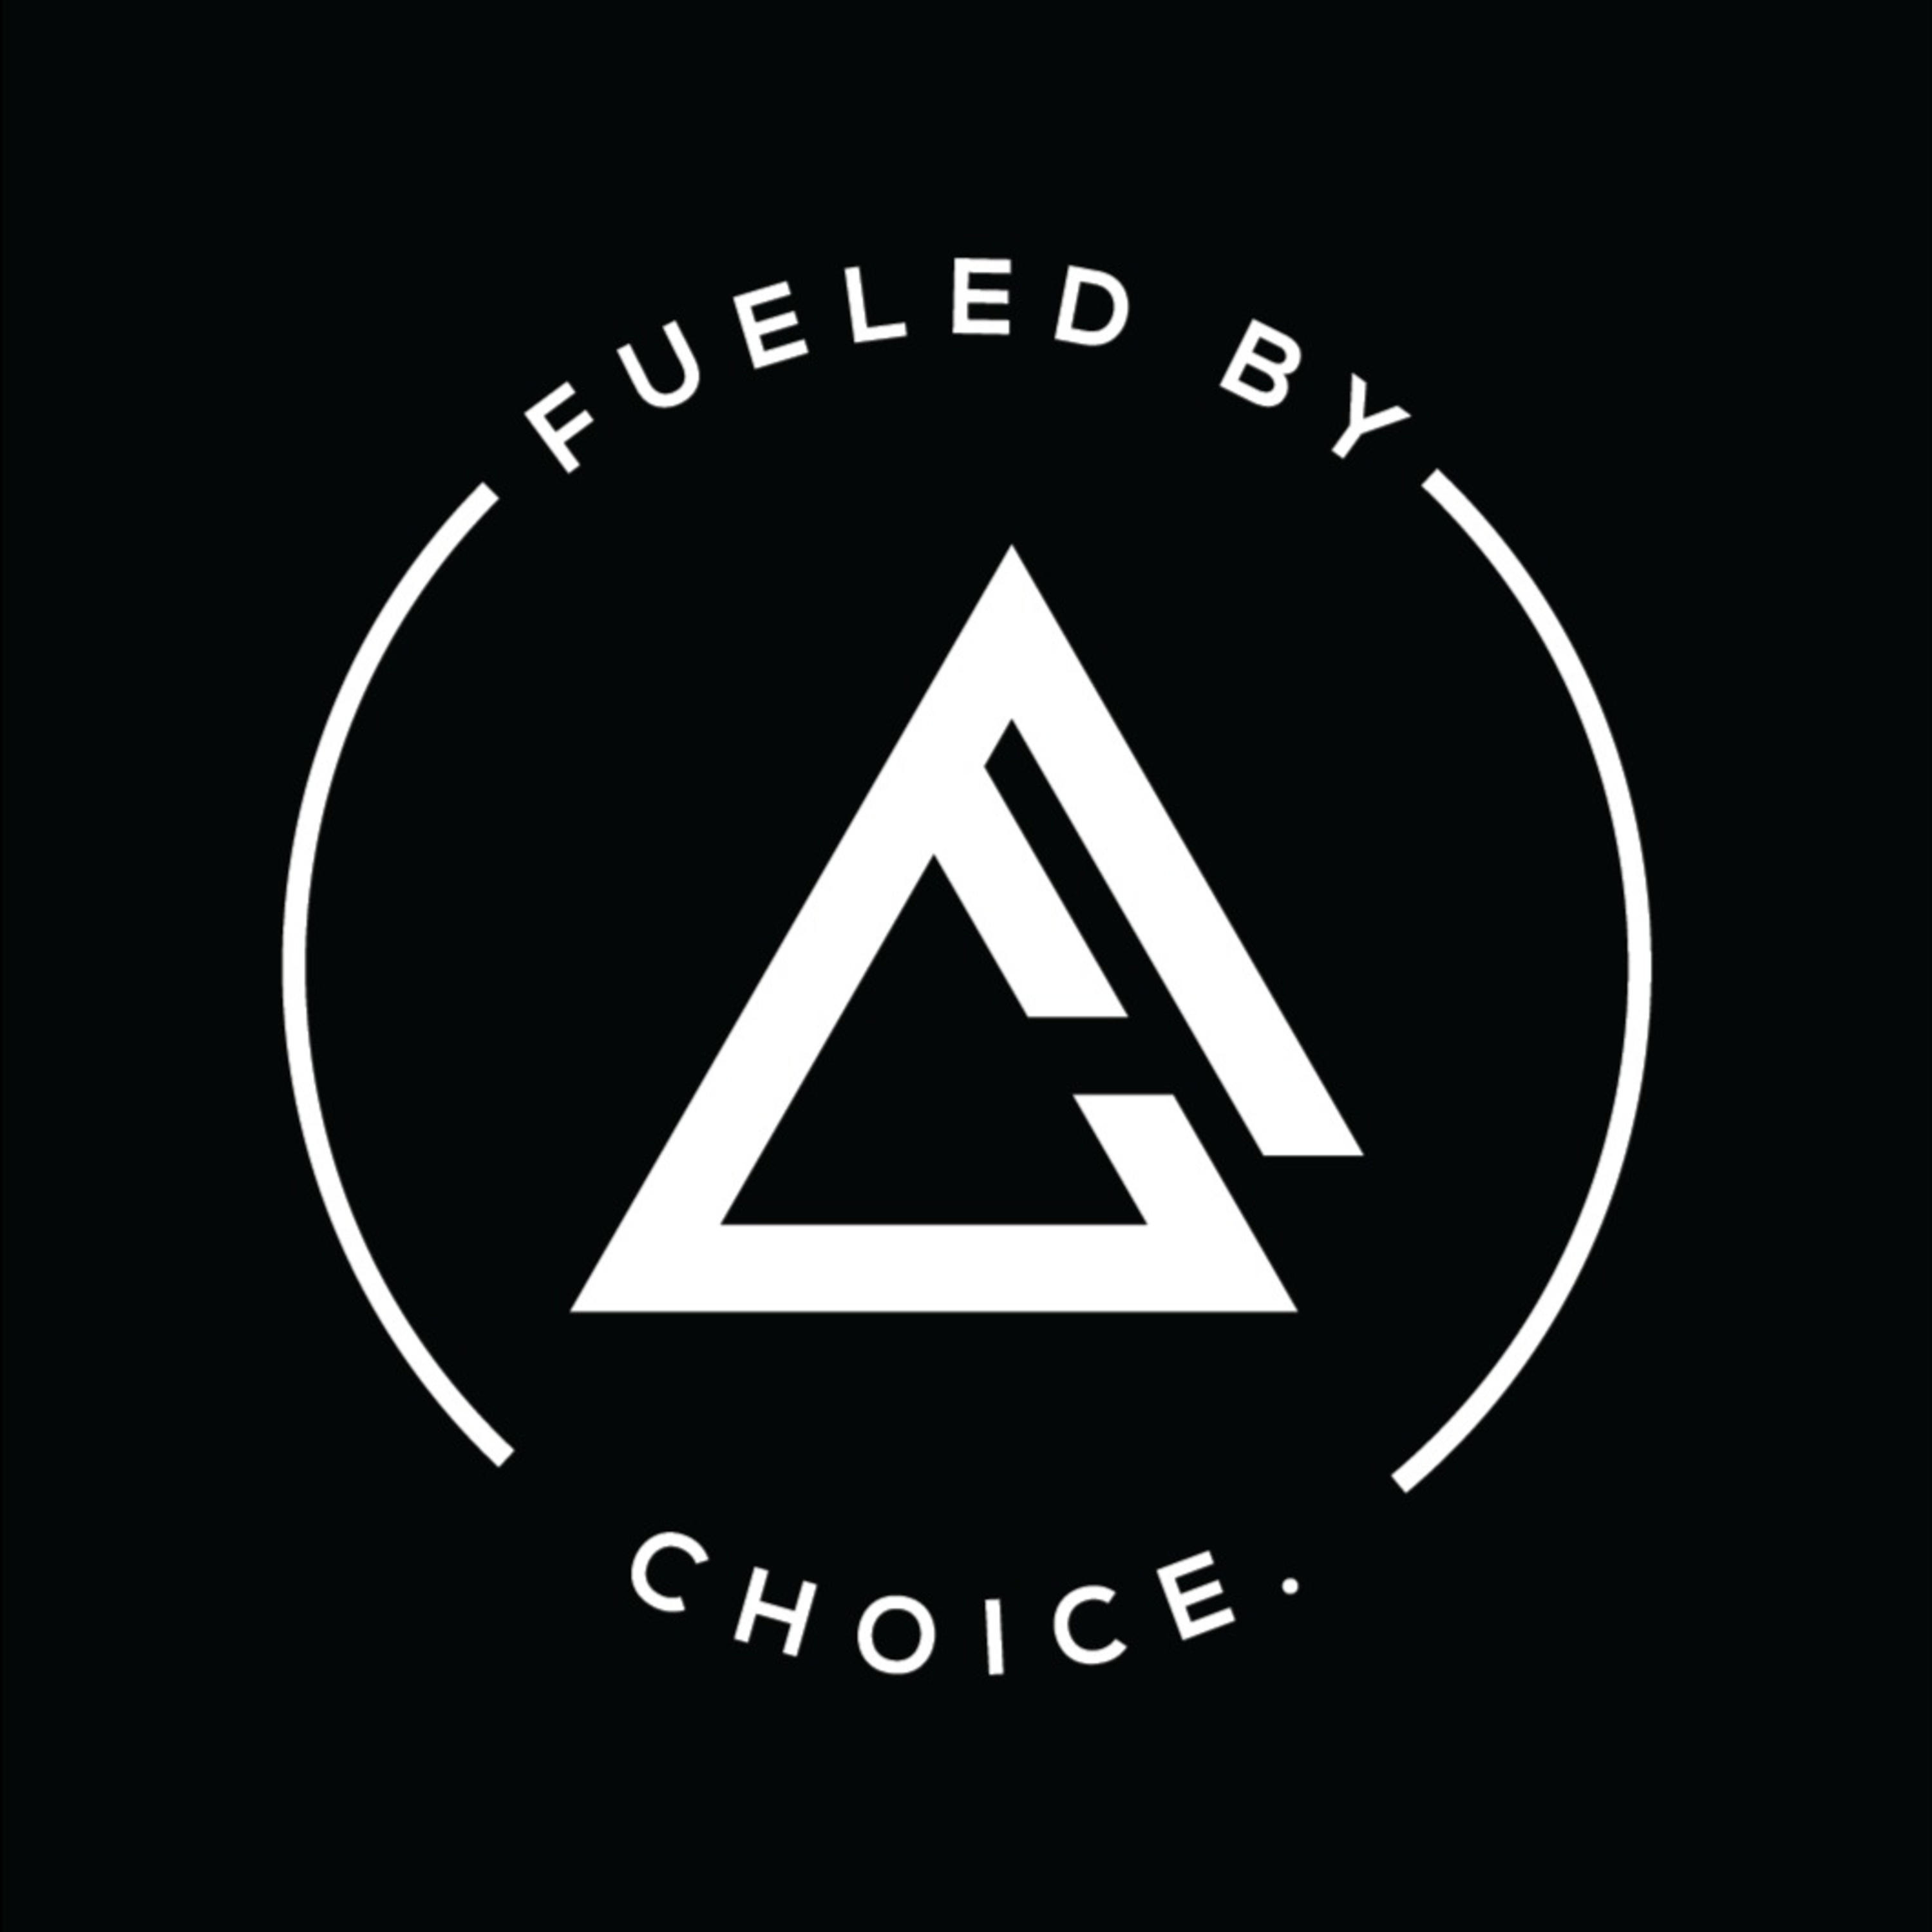 A Few Choice Words By fueled by choice.™